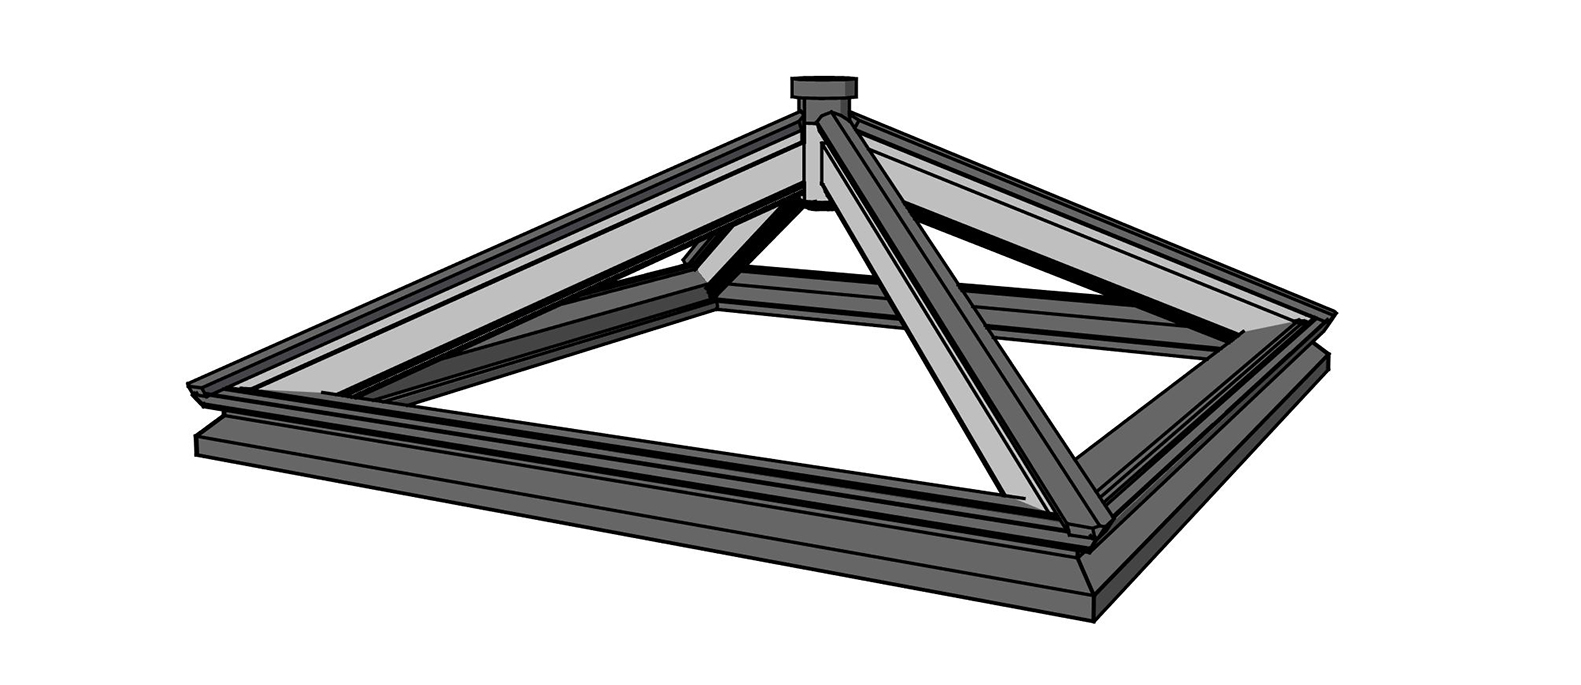 Just Roof Lanterns Linear Collection of Roof Lanterns